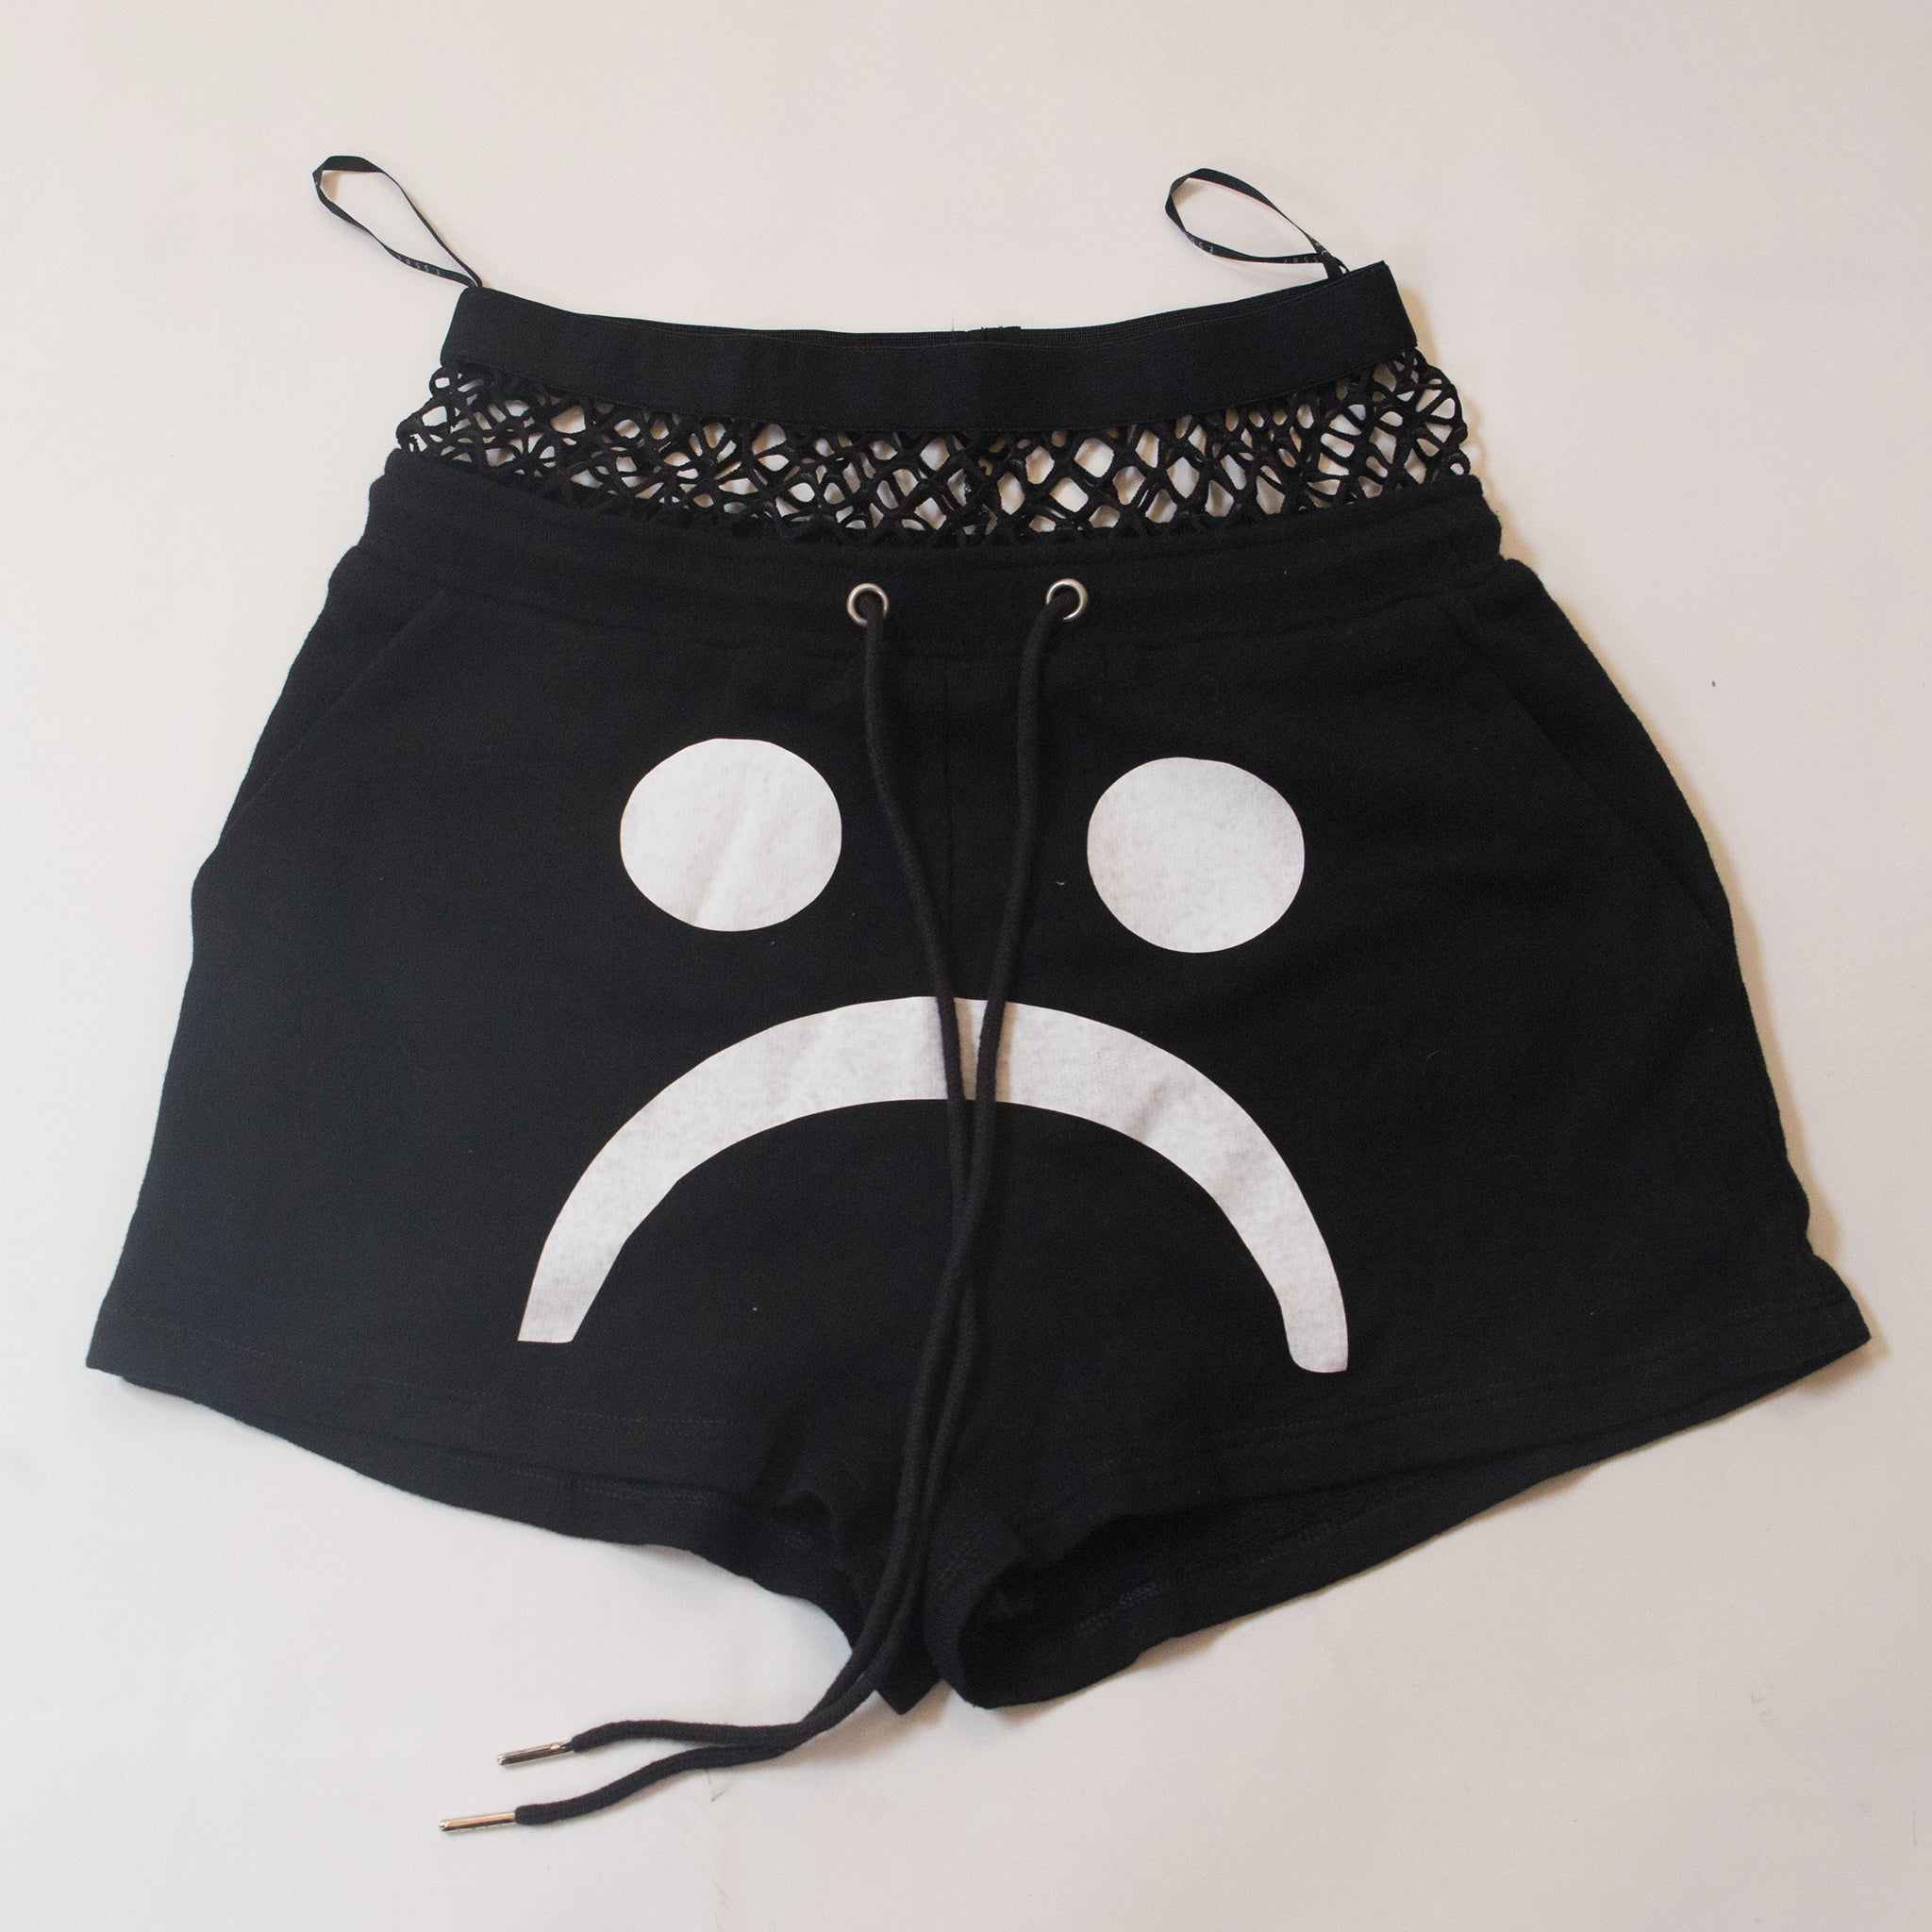 The Sad Society Sad Face Lace Crop Shorts